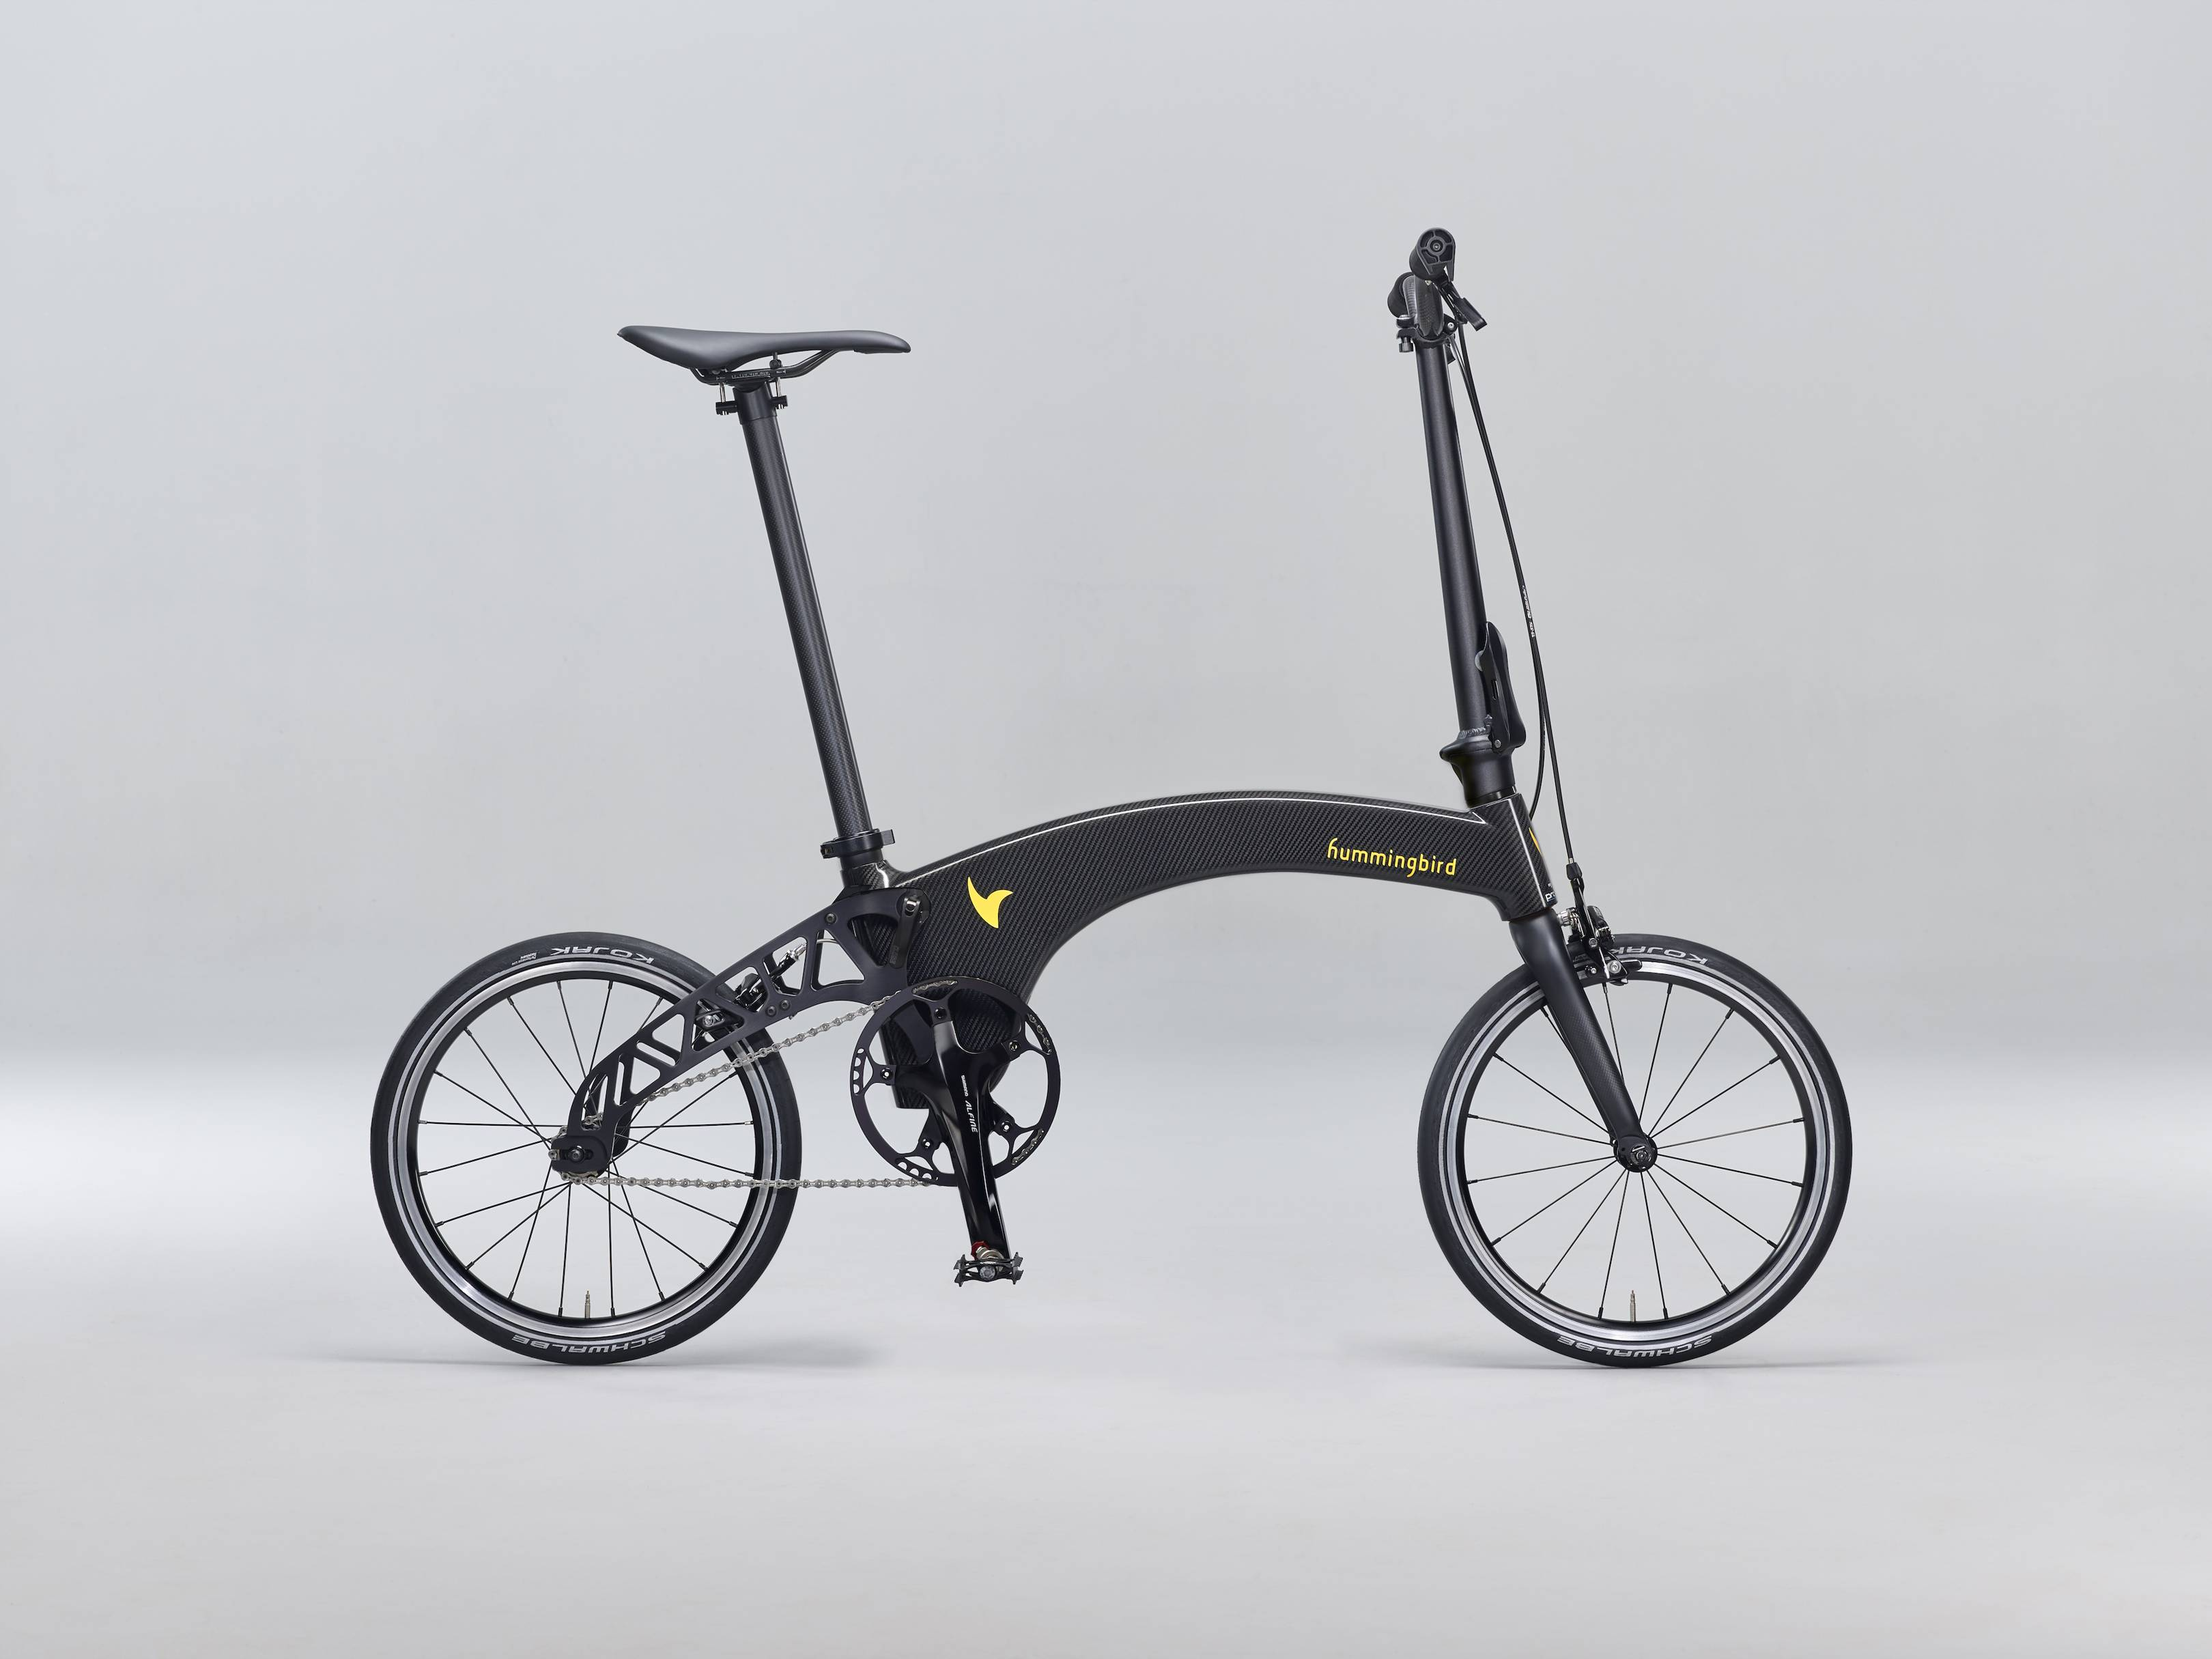 58d5962ffc5 Brompton Electric review: the best folding electric bikes to make your  commute more bearable | WIRED UK